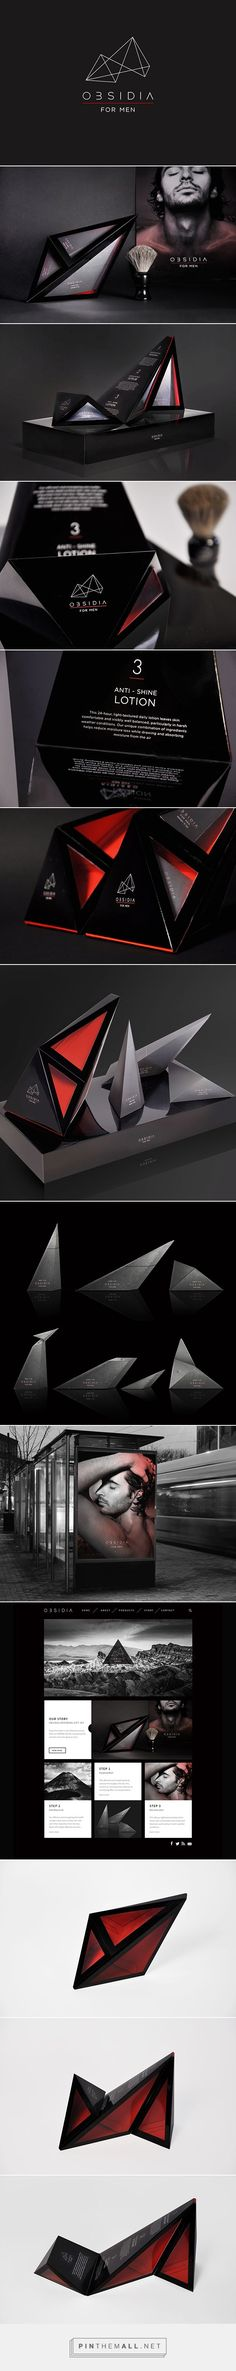 OBSIDIA for men on Behance curated by Packaging Diva